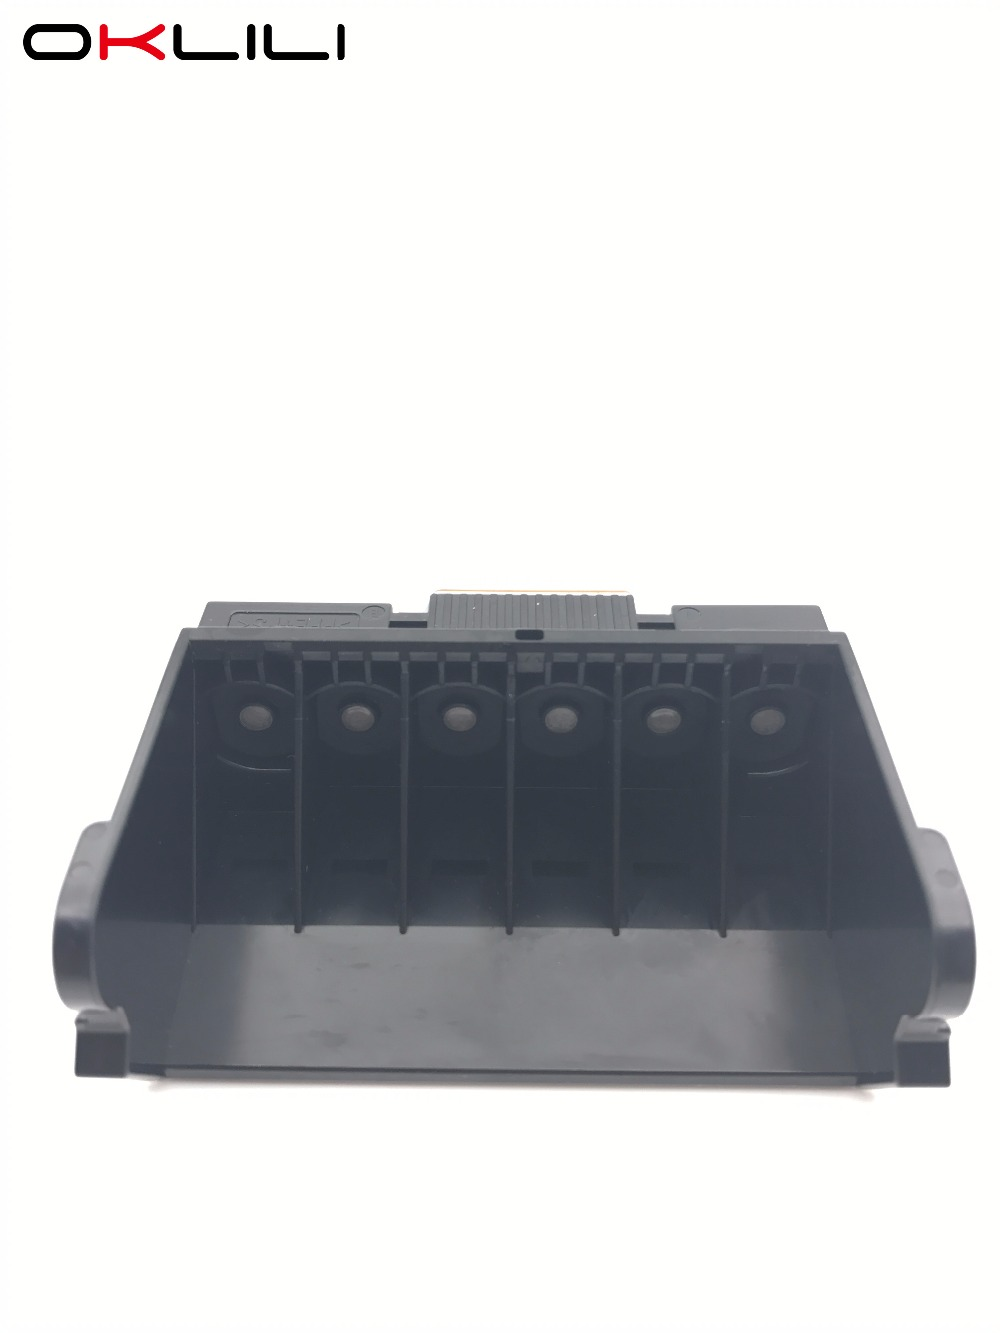 OKLILI ORIGINAL QY6-0063 QY6-0063-000 Printhead Print Head Printer Head for Canon iP6600D iP6700D iP6600 iP6700OKLILI ORIGINAL QY6-0063 QY6-0063-000 Printhead Print Head Printer Head for Canon iP6600D iP6700D iP6600 iP6700